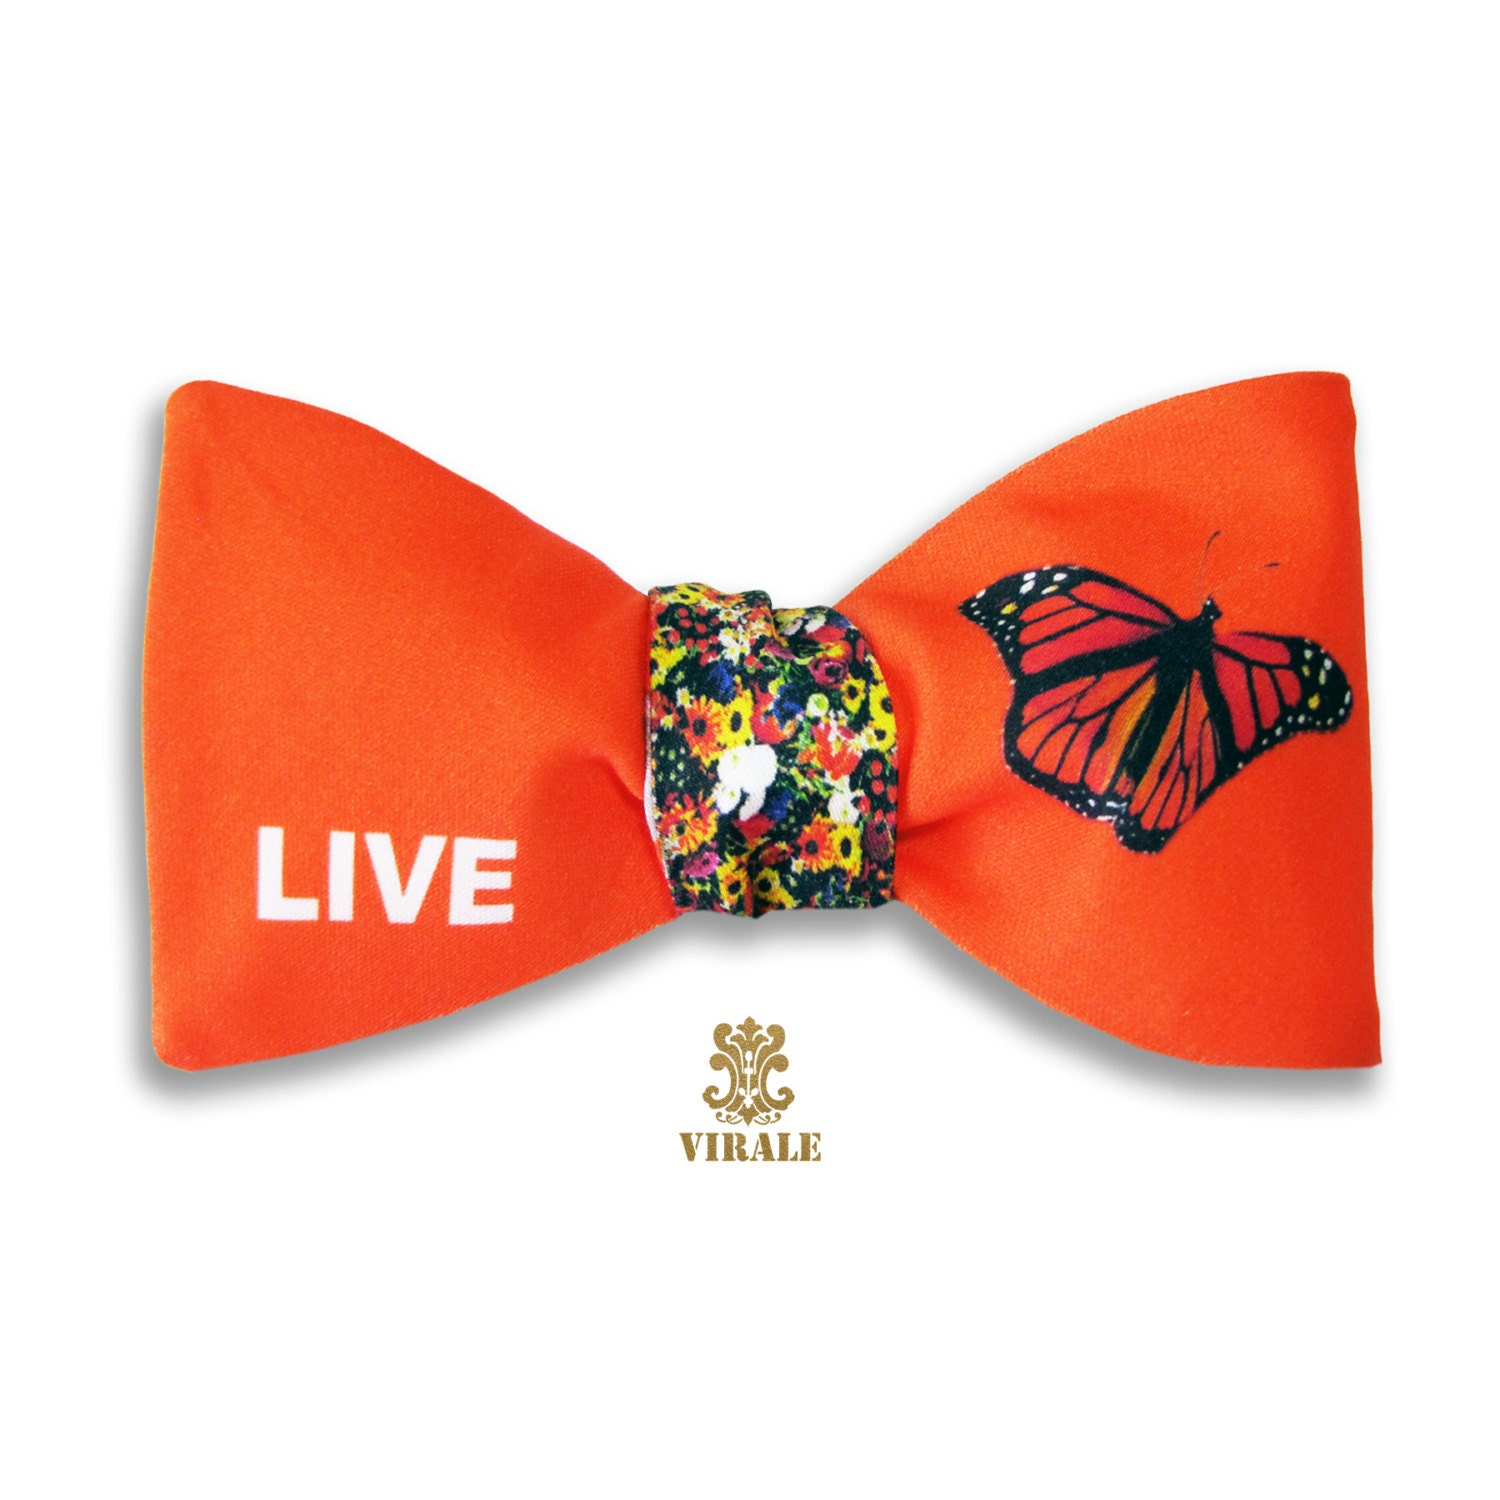 Virale By Dr B Live You Should Bow Tie Inspired By Dorothy Parker